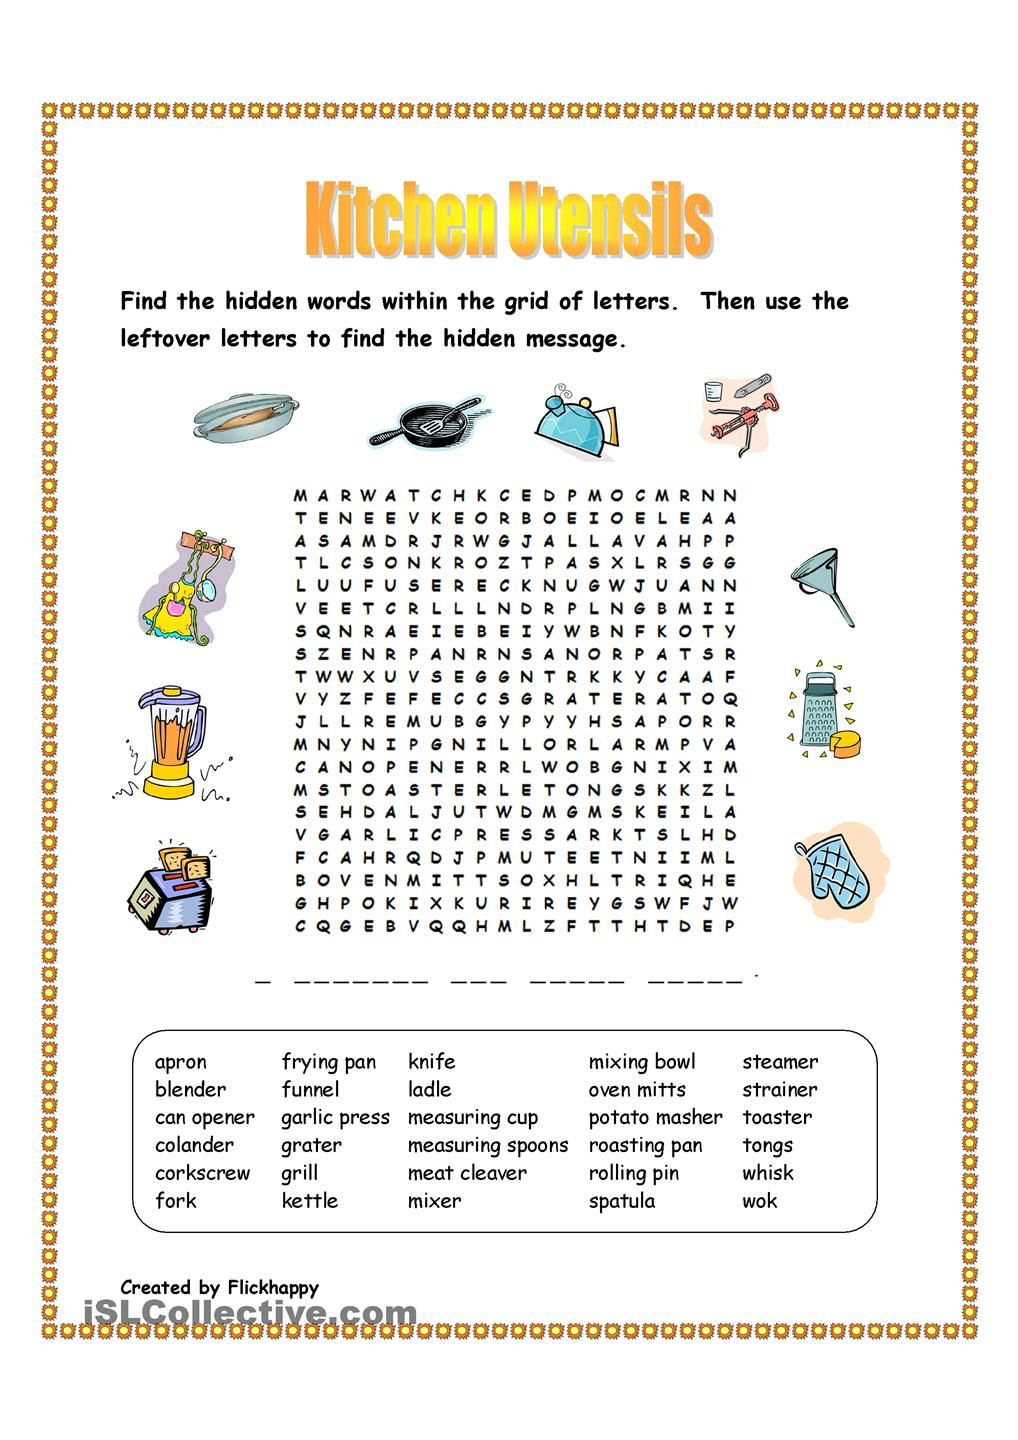 Kitchen Utensils Wordsearch Kitchen Utensils Kitchen Utensils